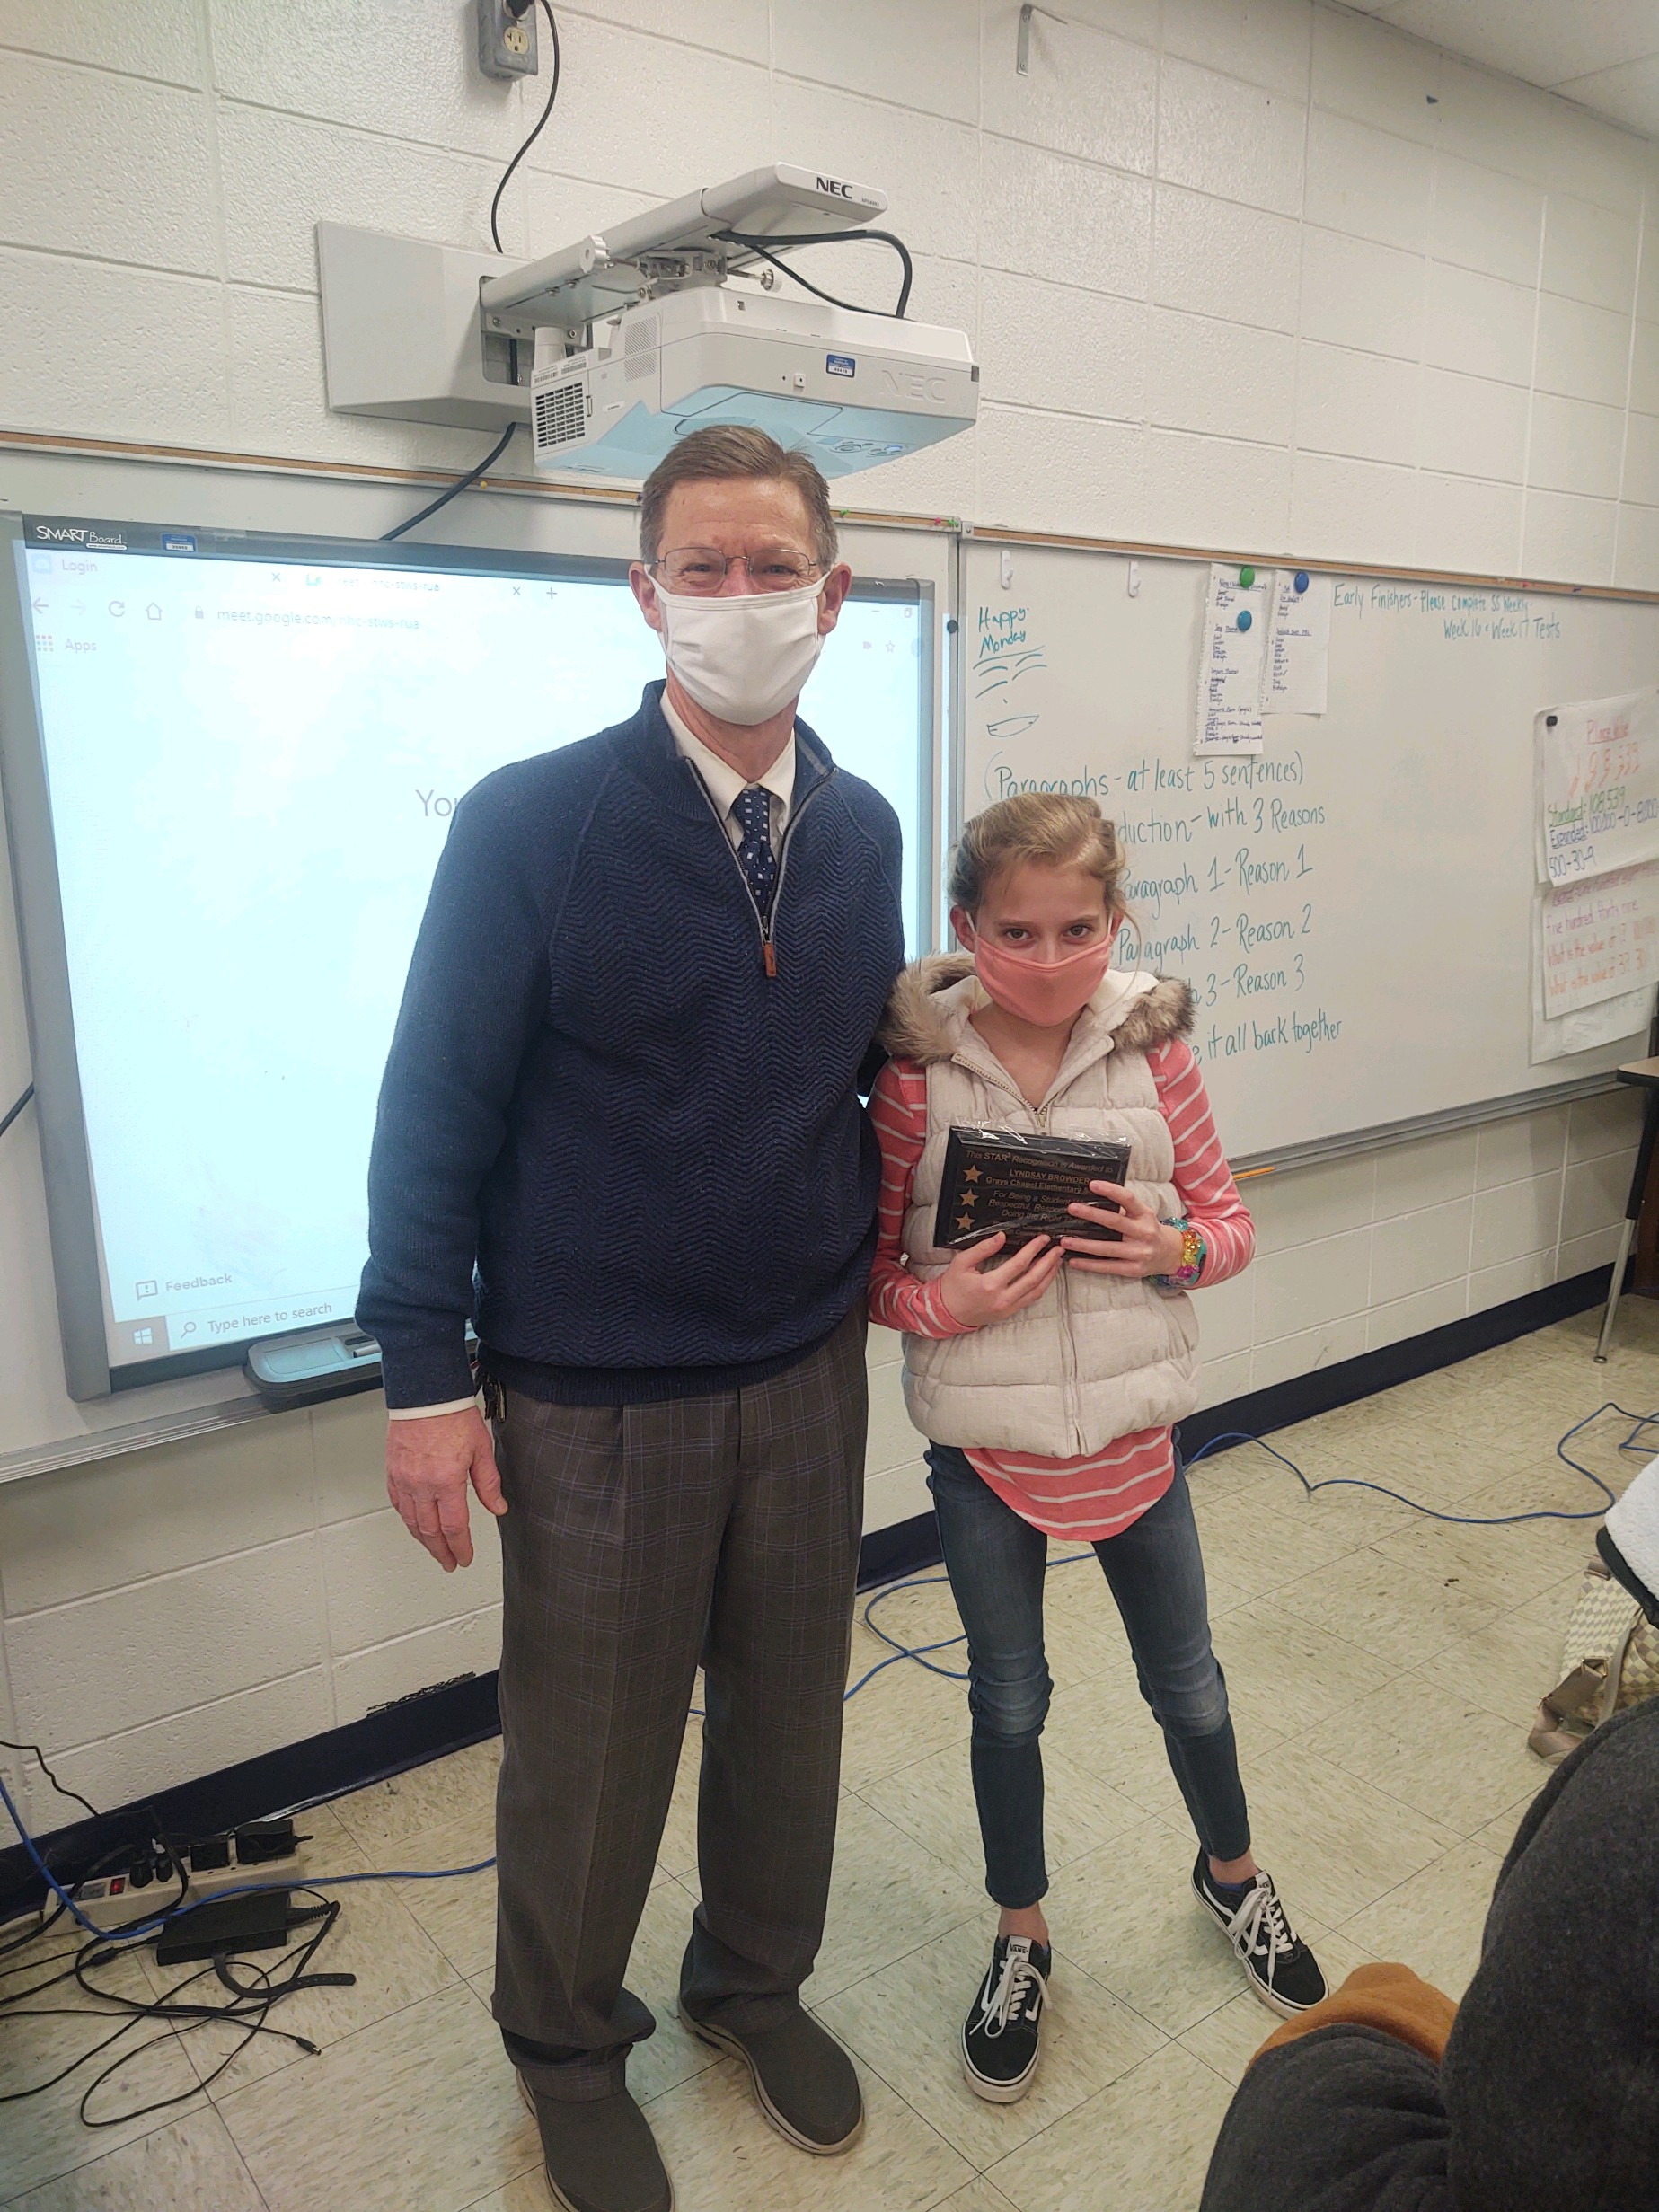 Lyndsay Browder and Mr. Reaves